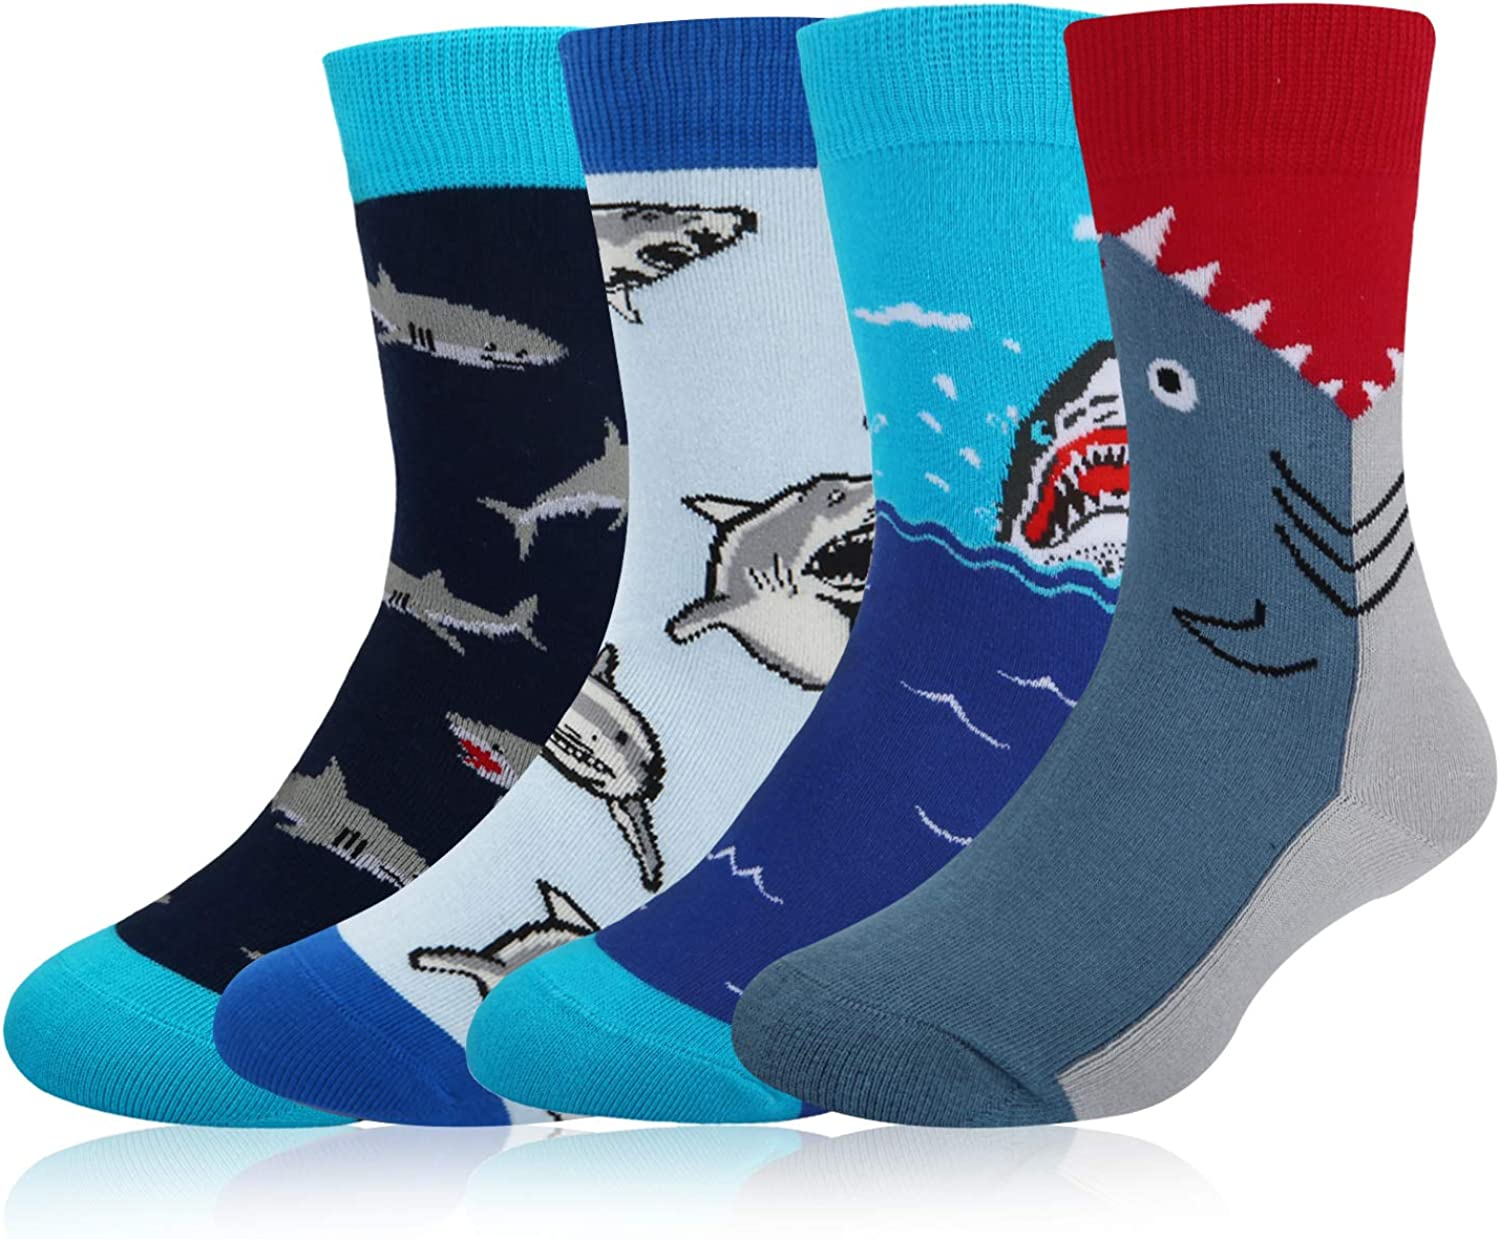 HAPPYPOP Boys Shark Space Dino Food Crew Socks,Crazy Novelty Fun Socks for Kids